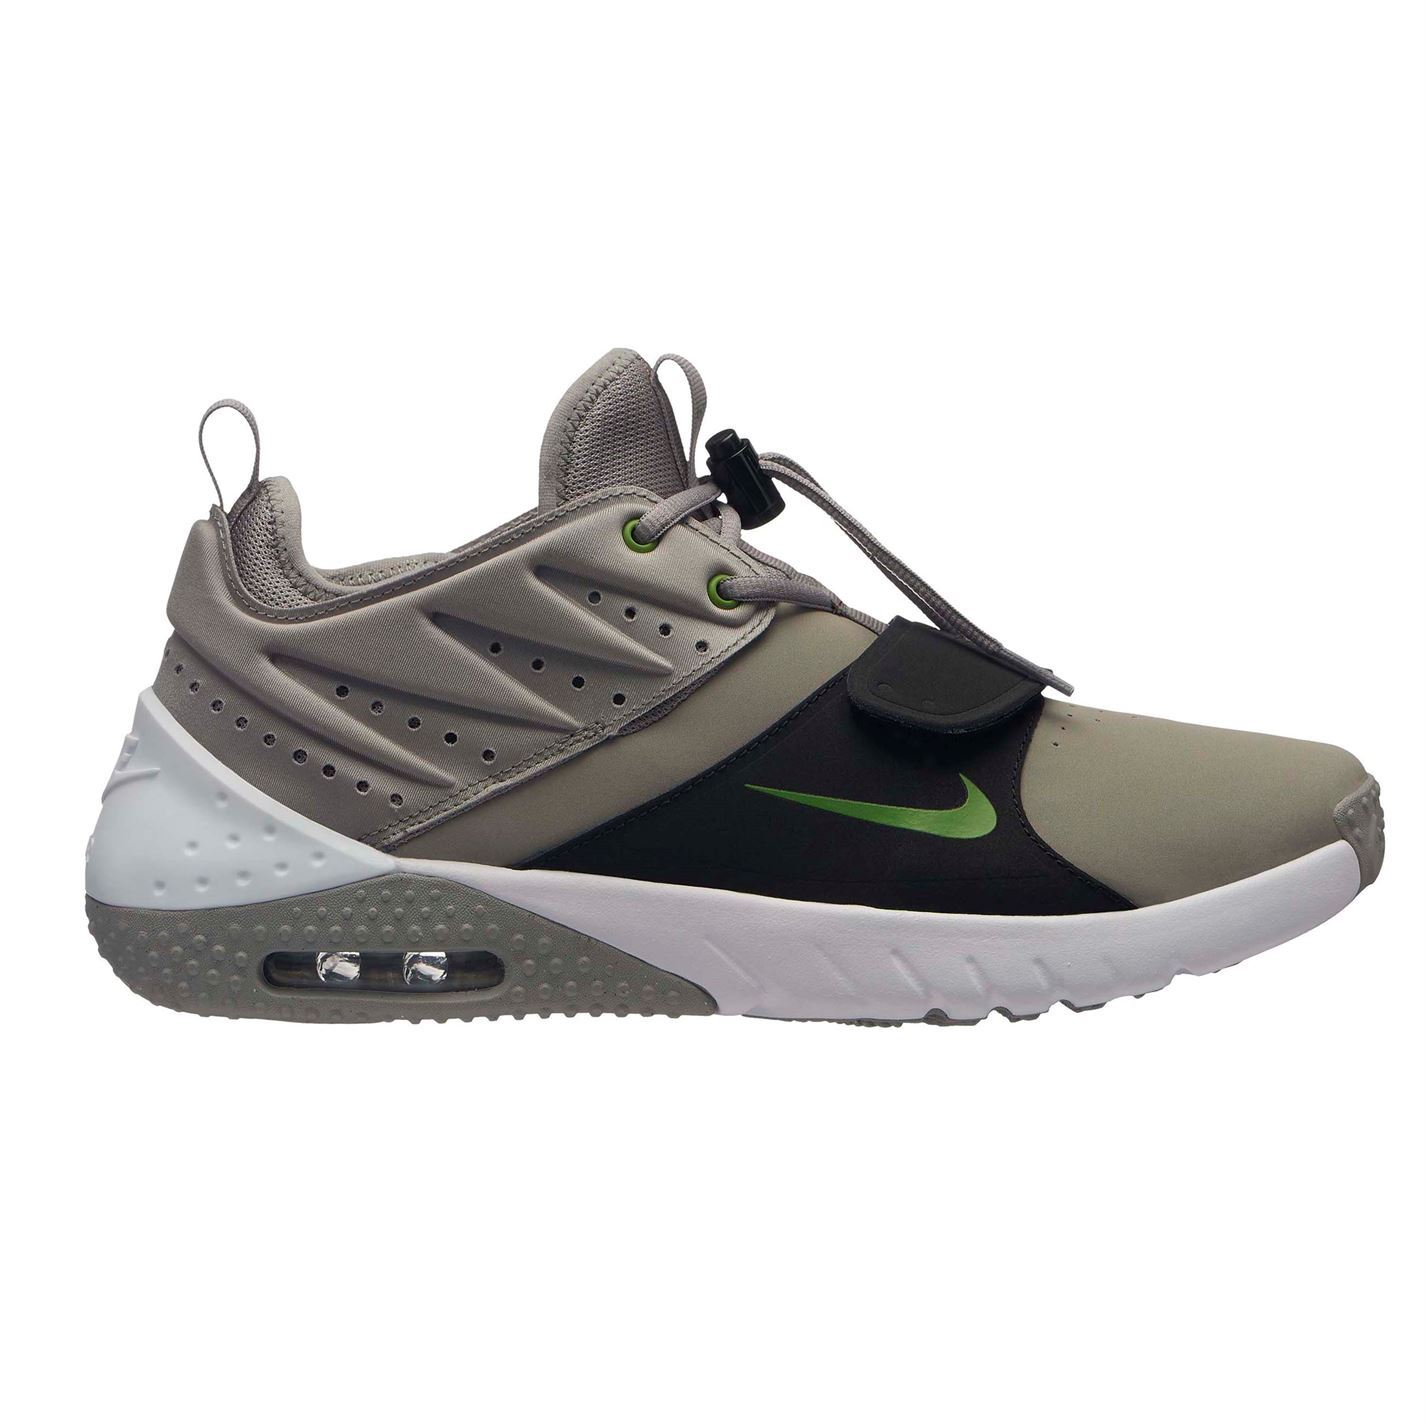 new styles crazy price special for shoe Nike Air Max Trainer 1 Leather Training Shoes Mens Grey Gym ...